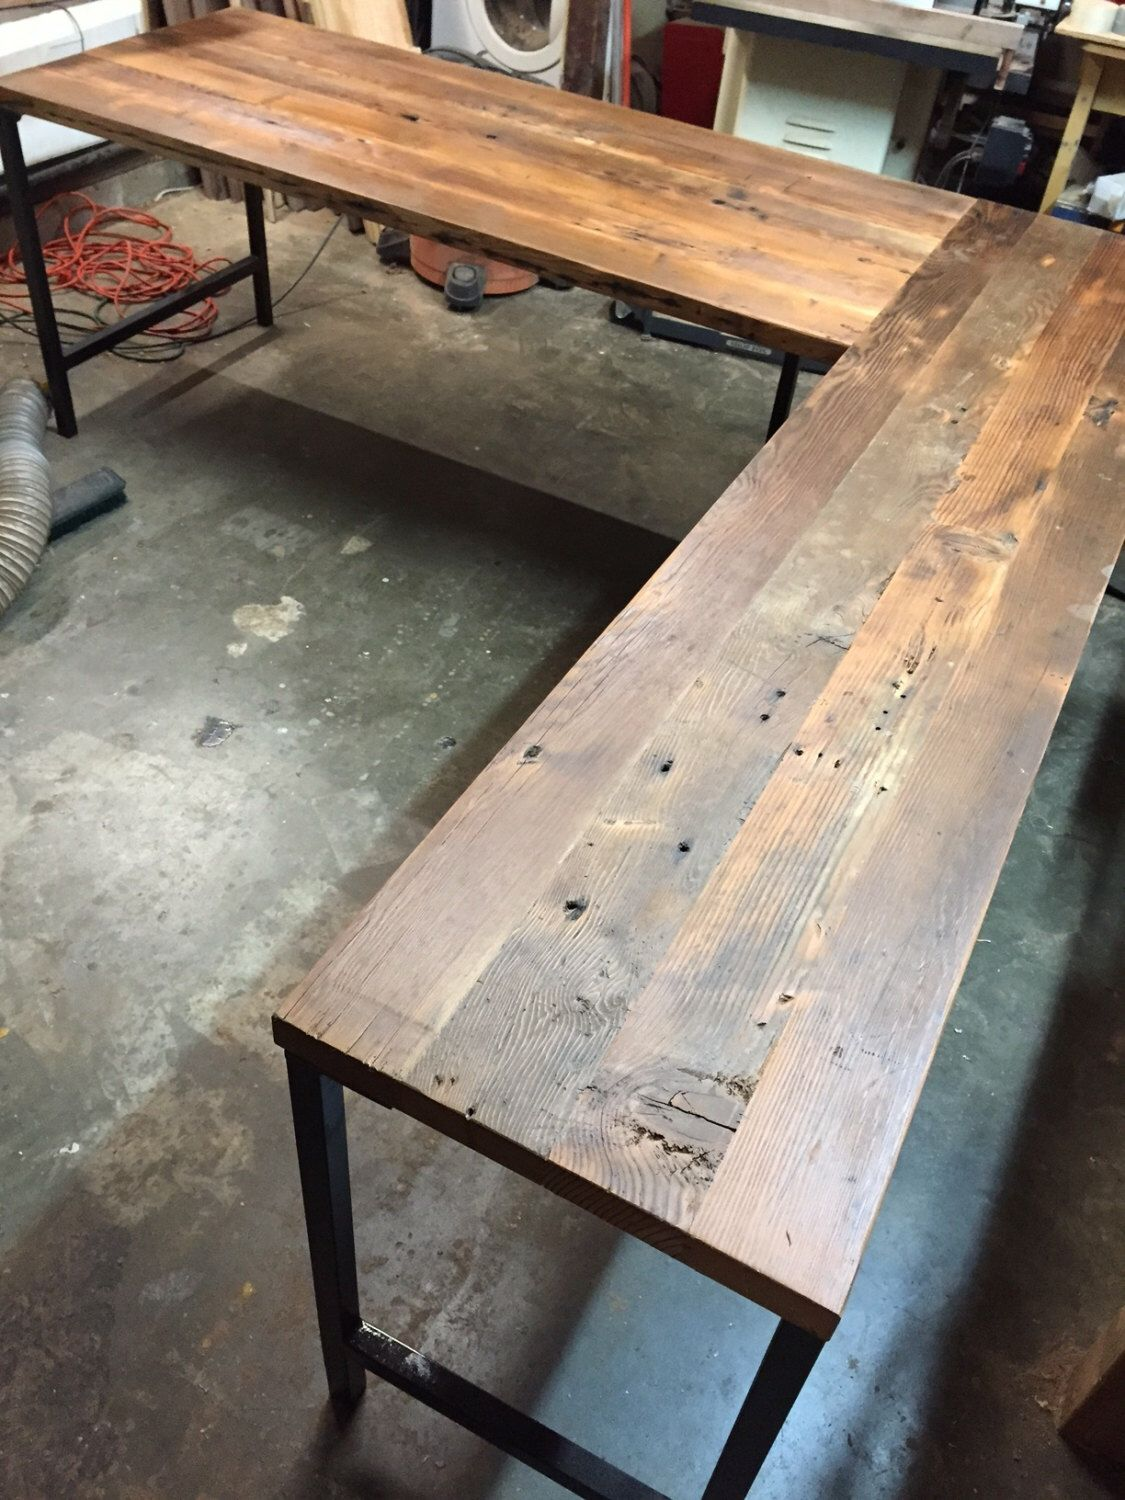 L Shaped Desk - Reclaimed Wood Desk - Industrial Modern Desk by  GuiceWoodworks on Etsy https